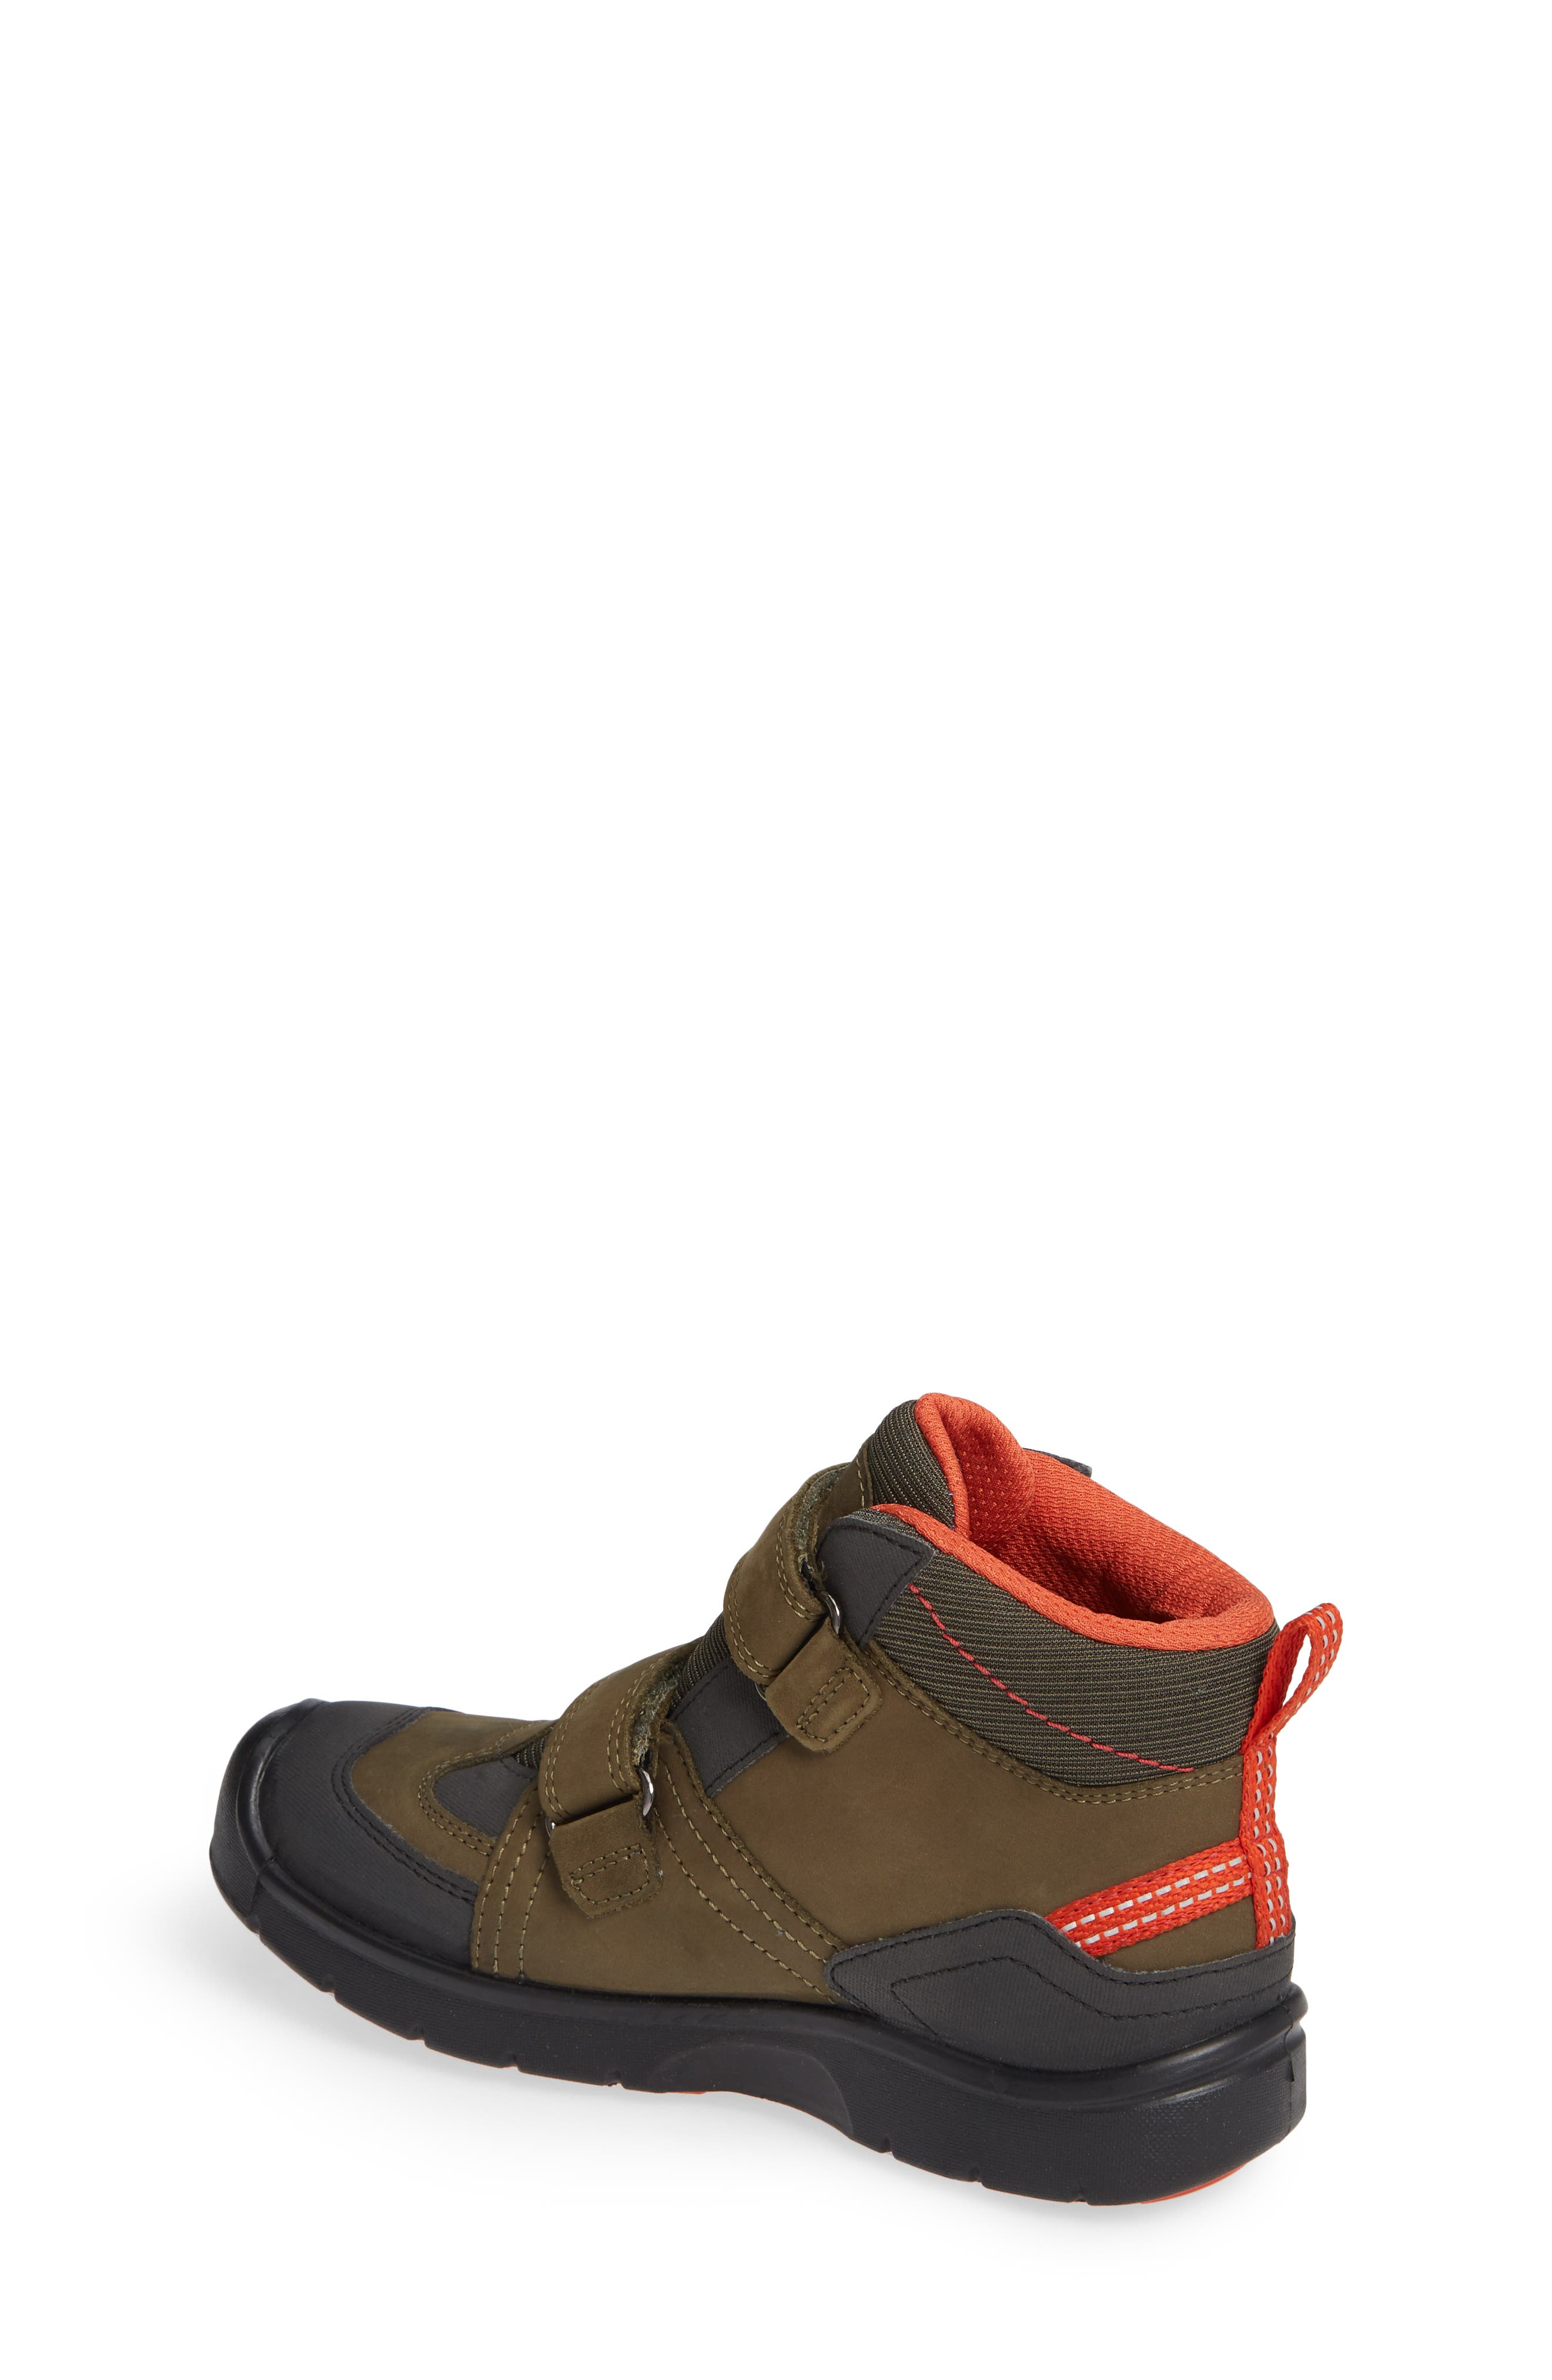 Hikeport Strap Waterproof Mid Boot,                             Alternate thumbnail 2, color,                             MARTINI OLIVE/ PUMPKIN